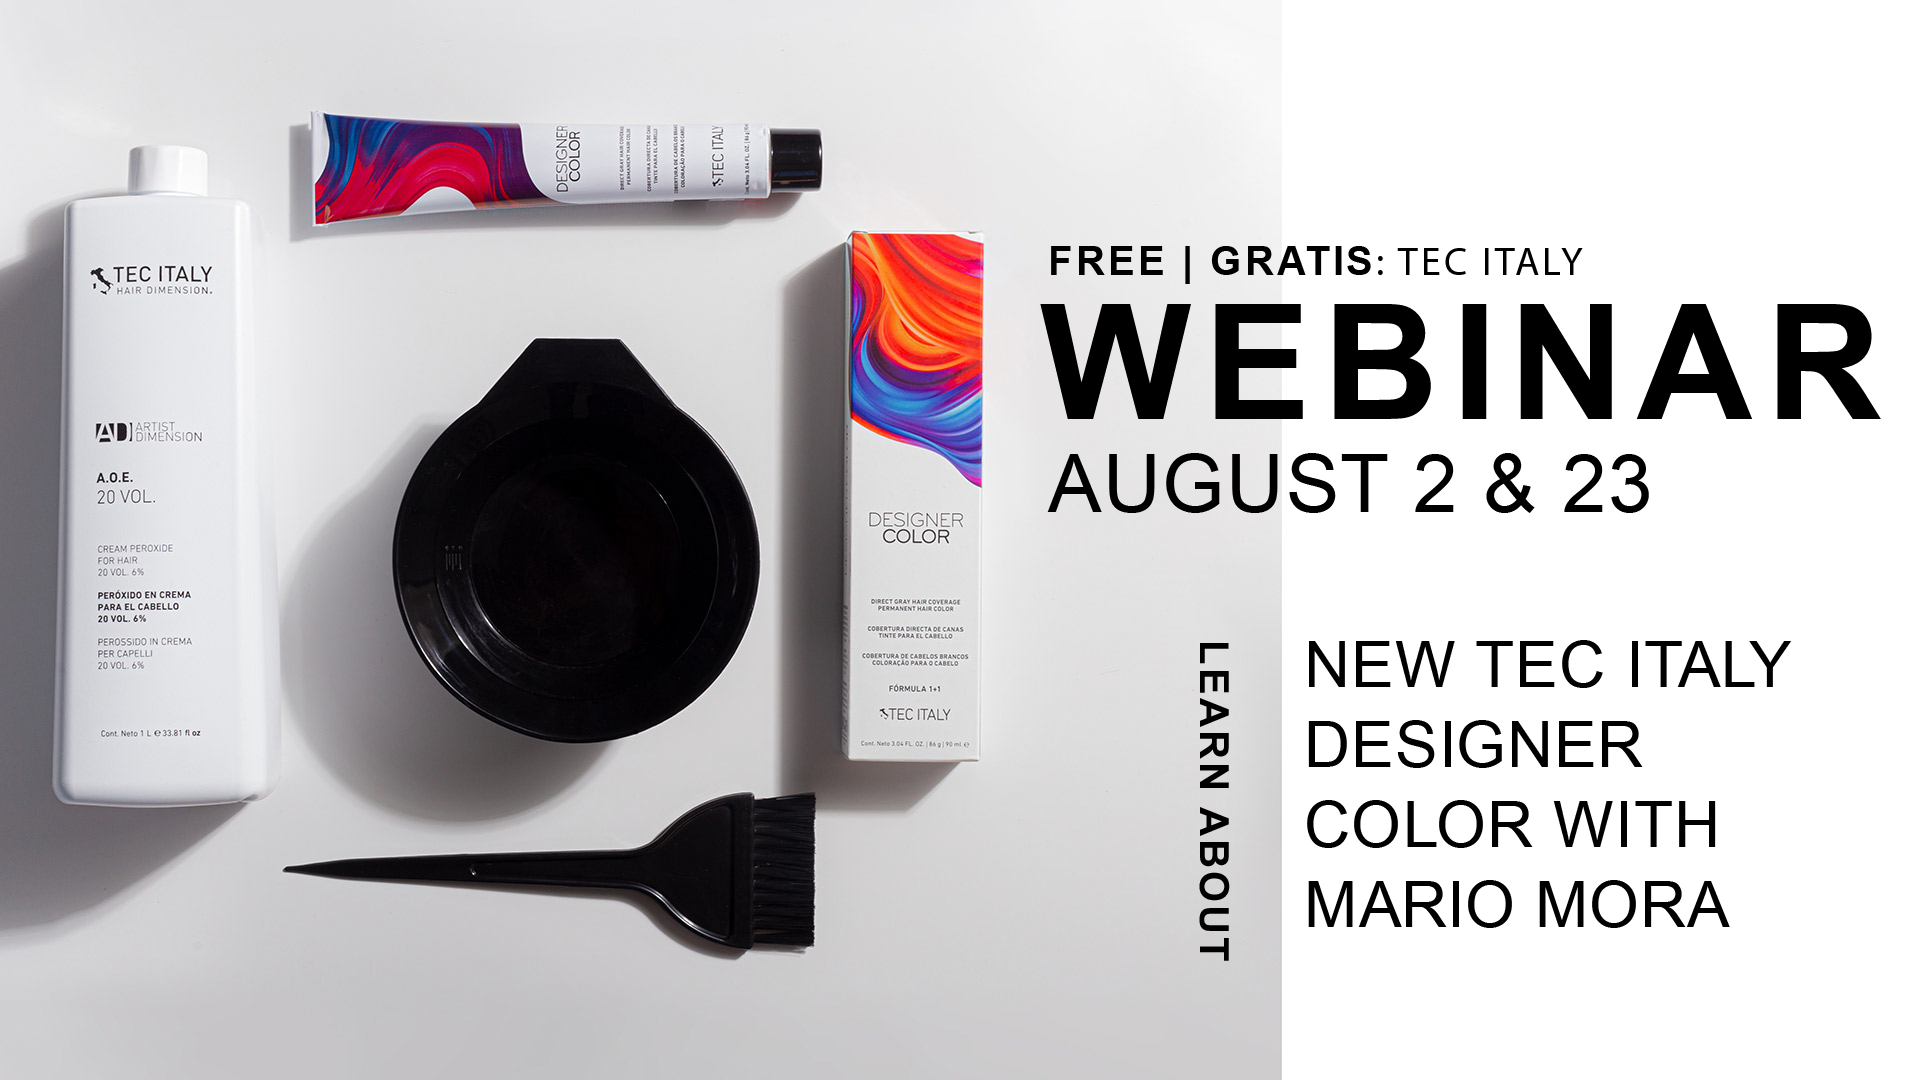 Photo of promo artwork showing the new Tec Italy Designer Color in a white box with a colorful red and blue splash at the top. The color box is next to the Tec Italy Developer, a mixing bowl, and a brush.